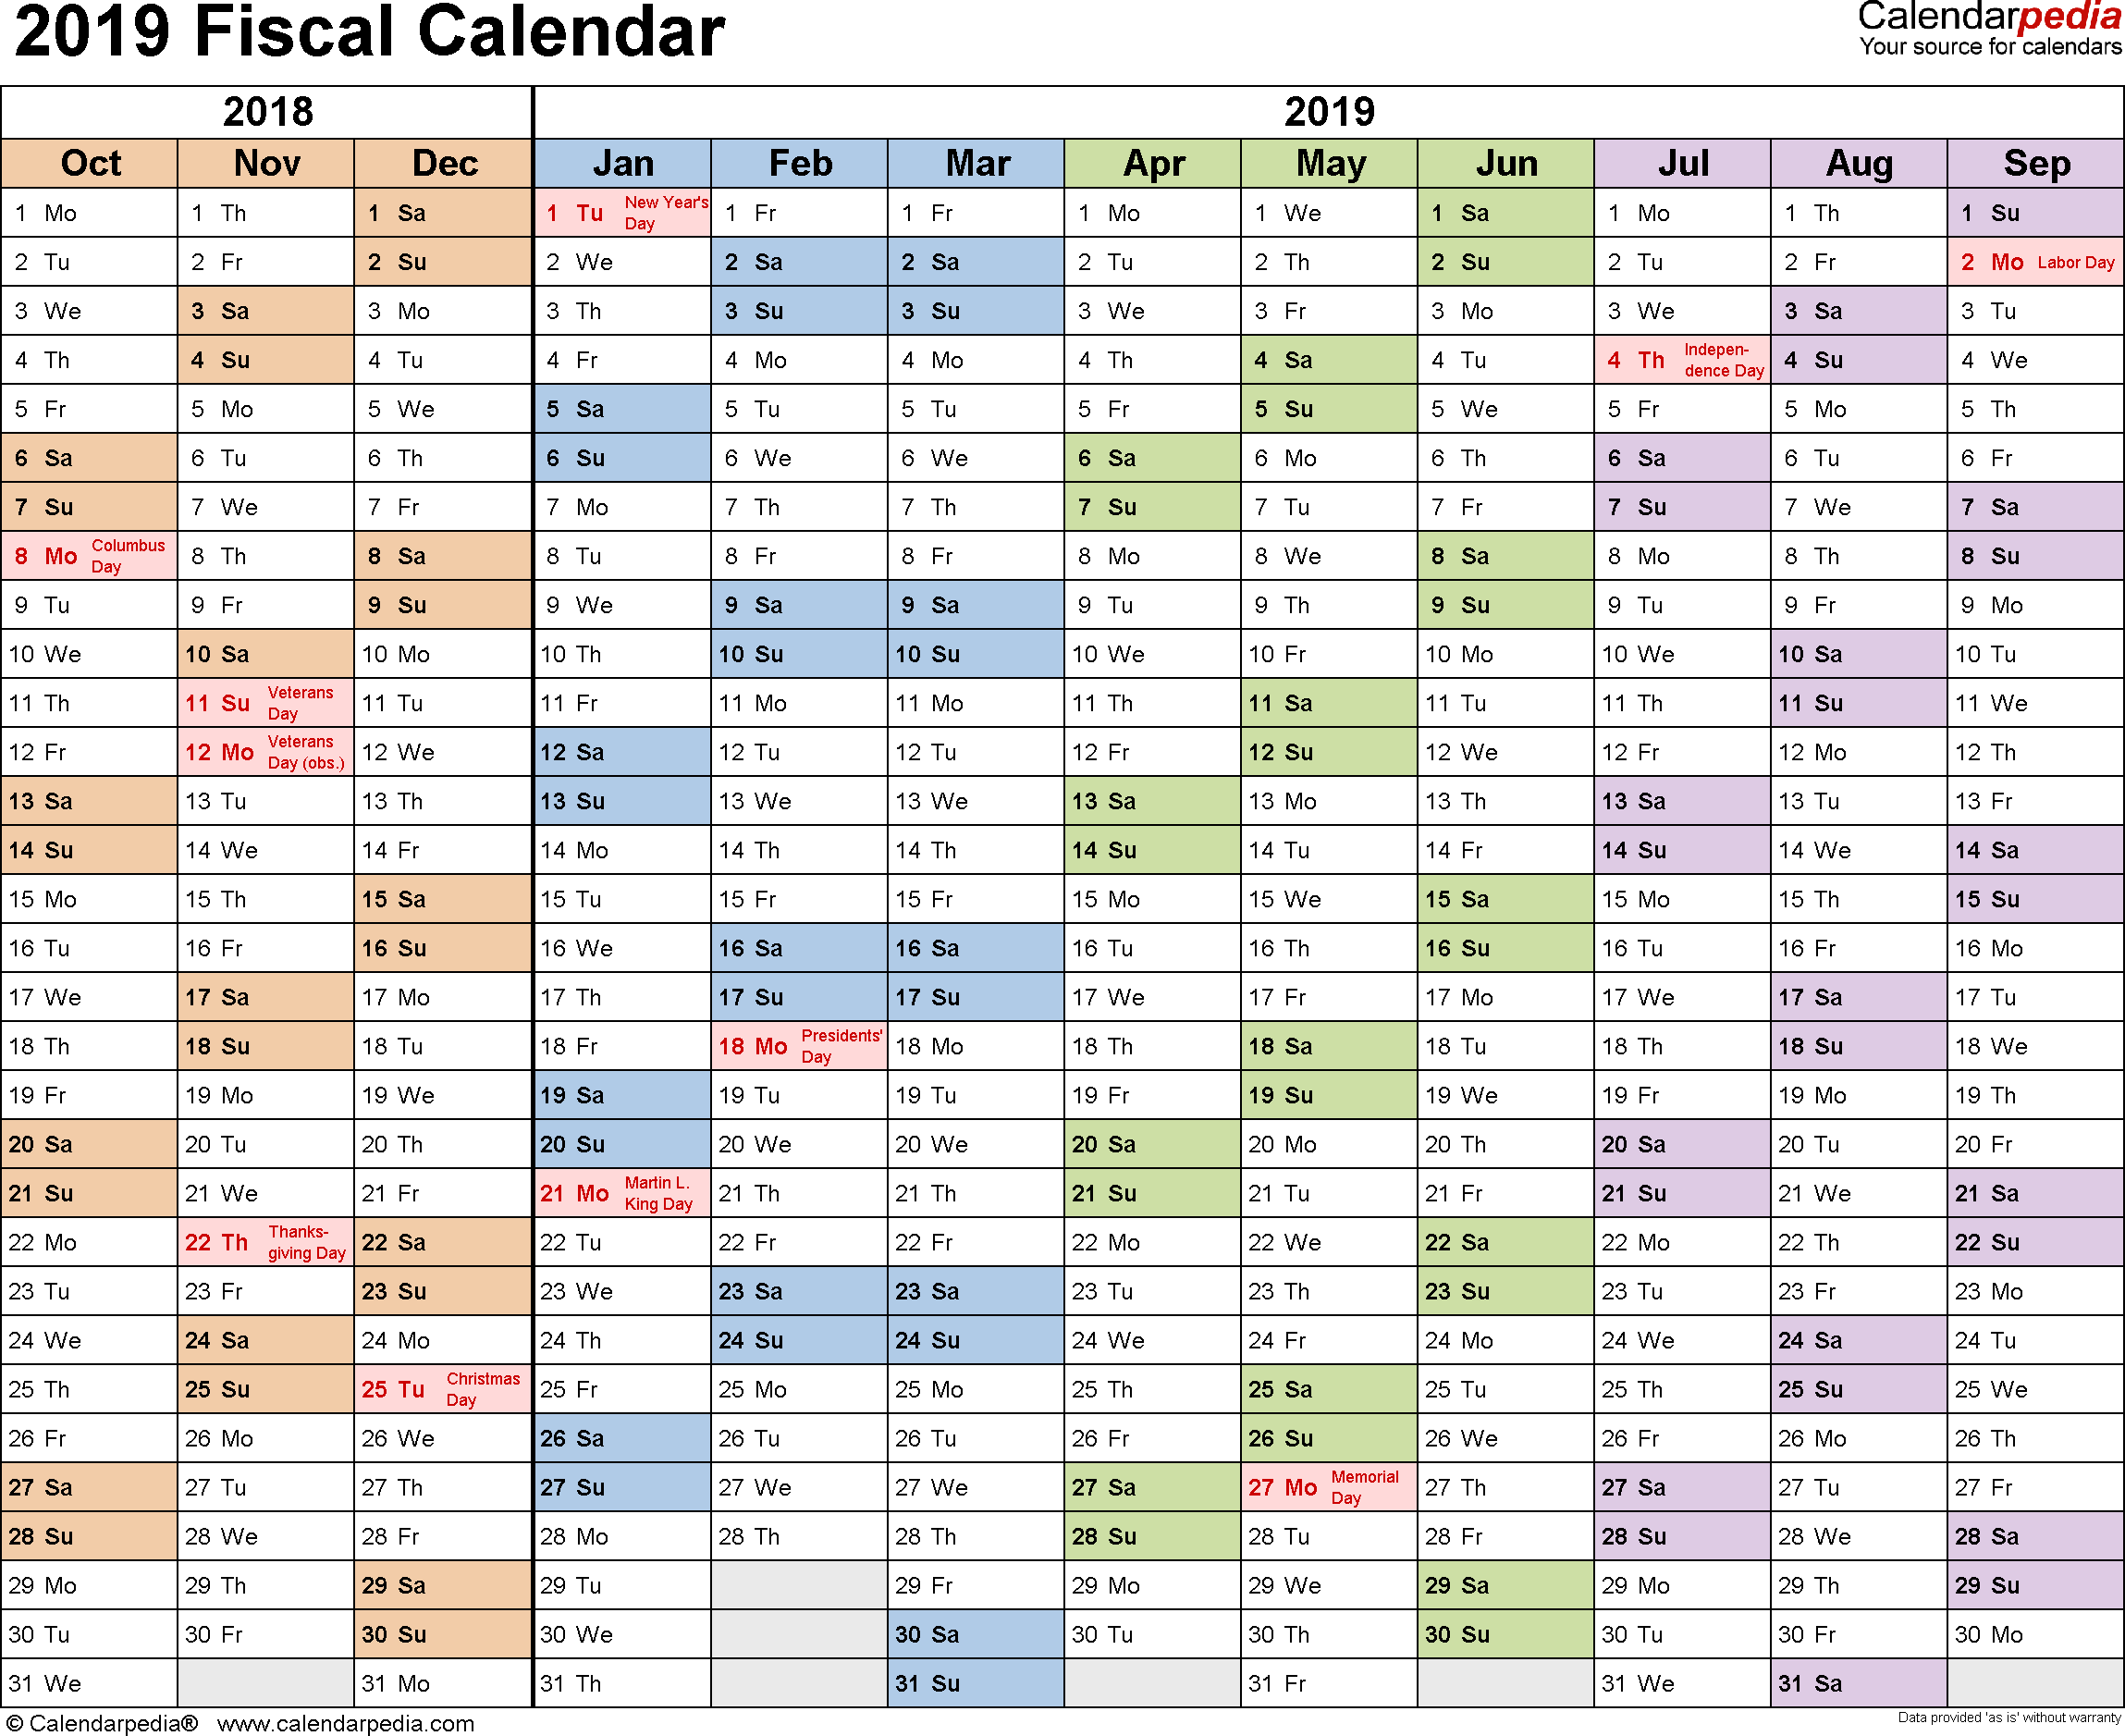 Fiscal Year 2019 Calendar Template With Calendars As Free Printable Word Templates